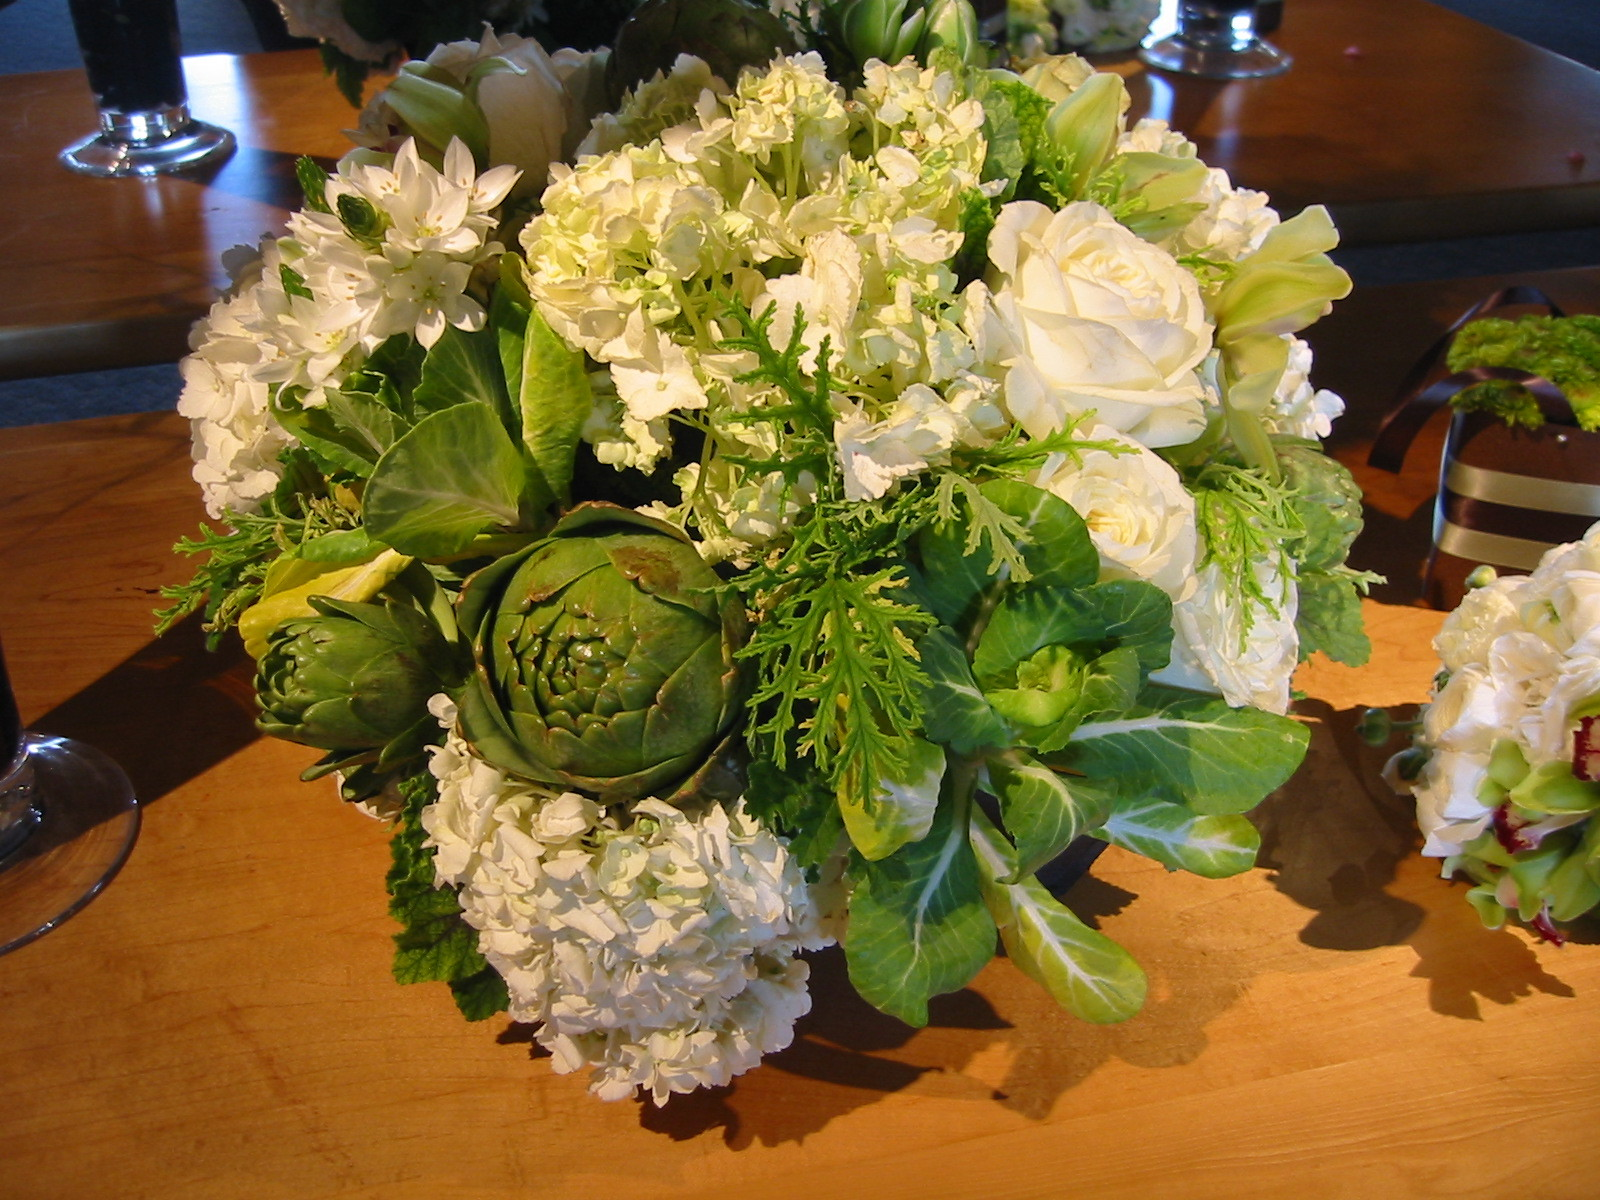 Flowers & Decor, white, green, brown, Bride Bouquets, Flowers, Flower, Bouquet